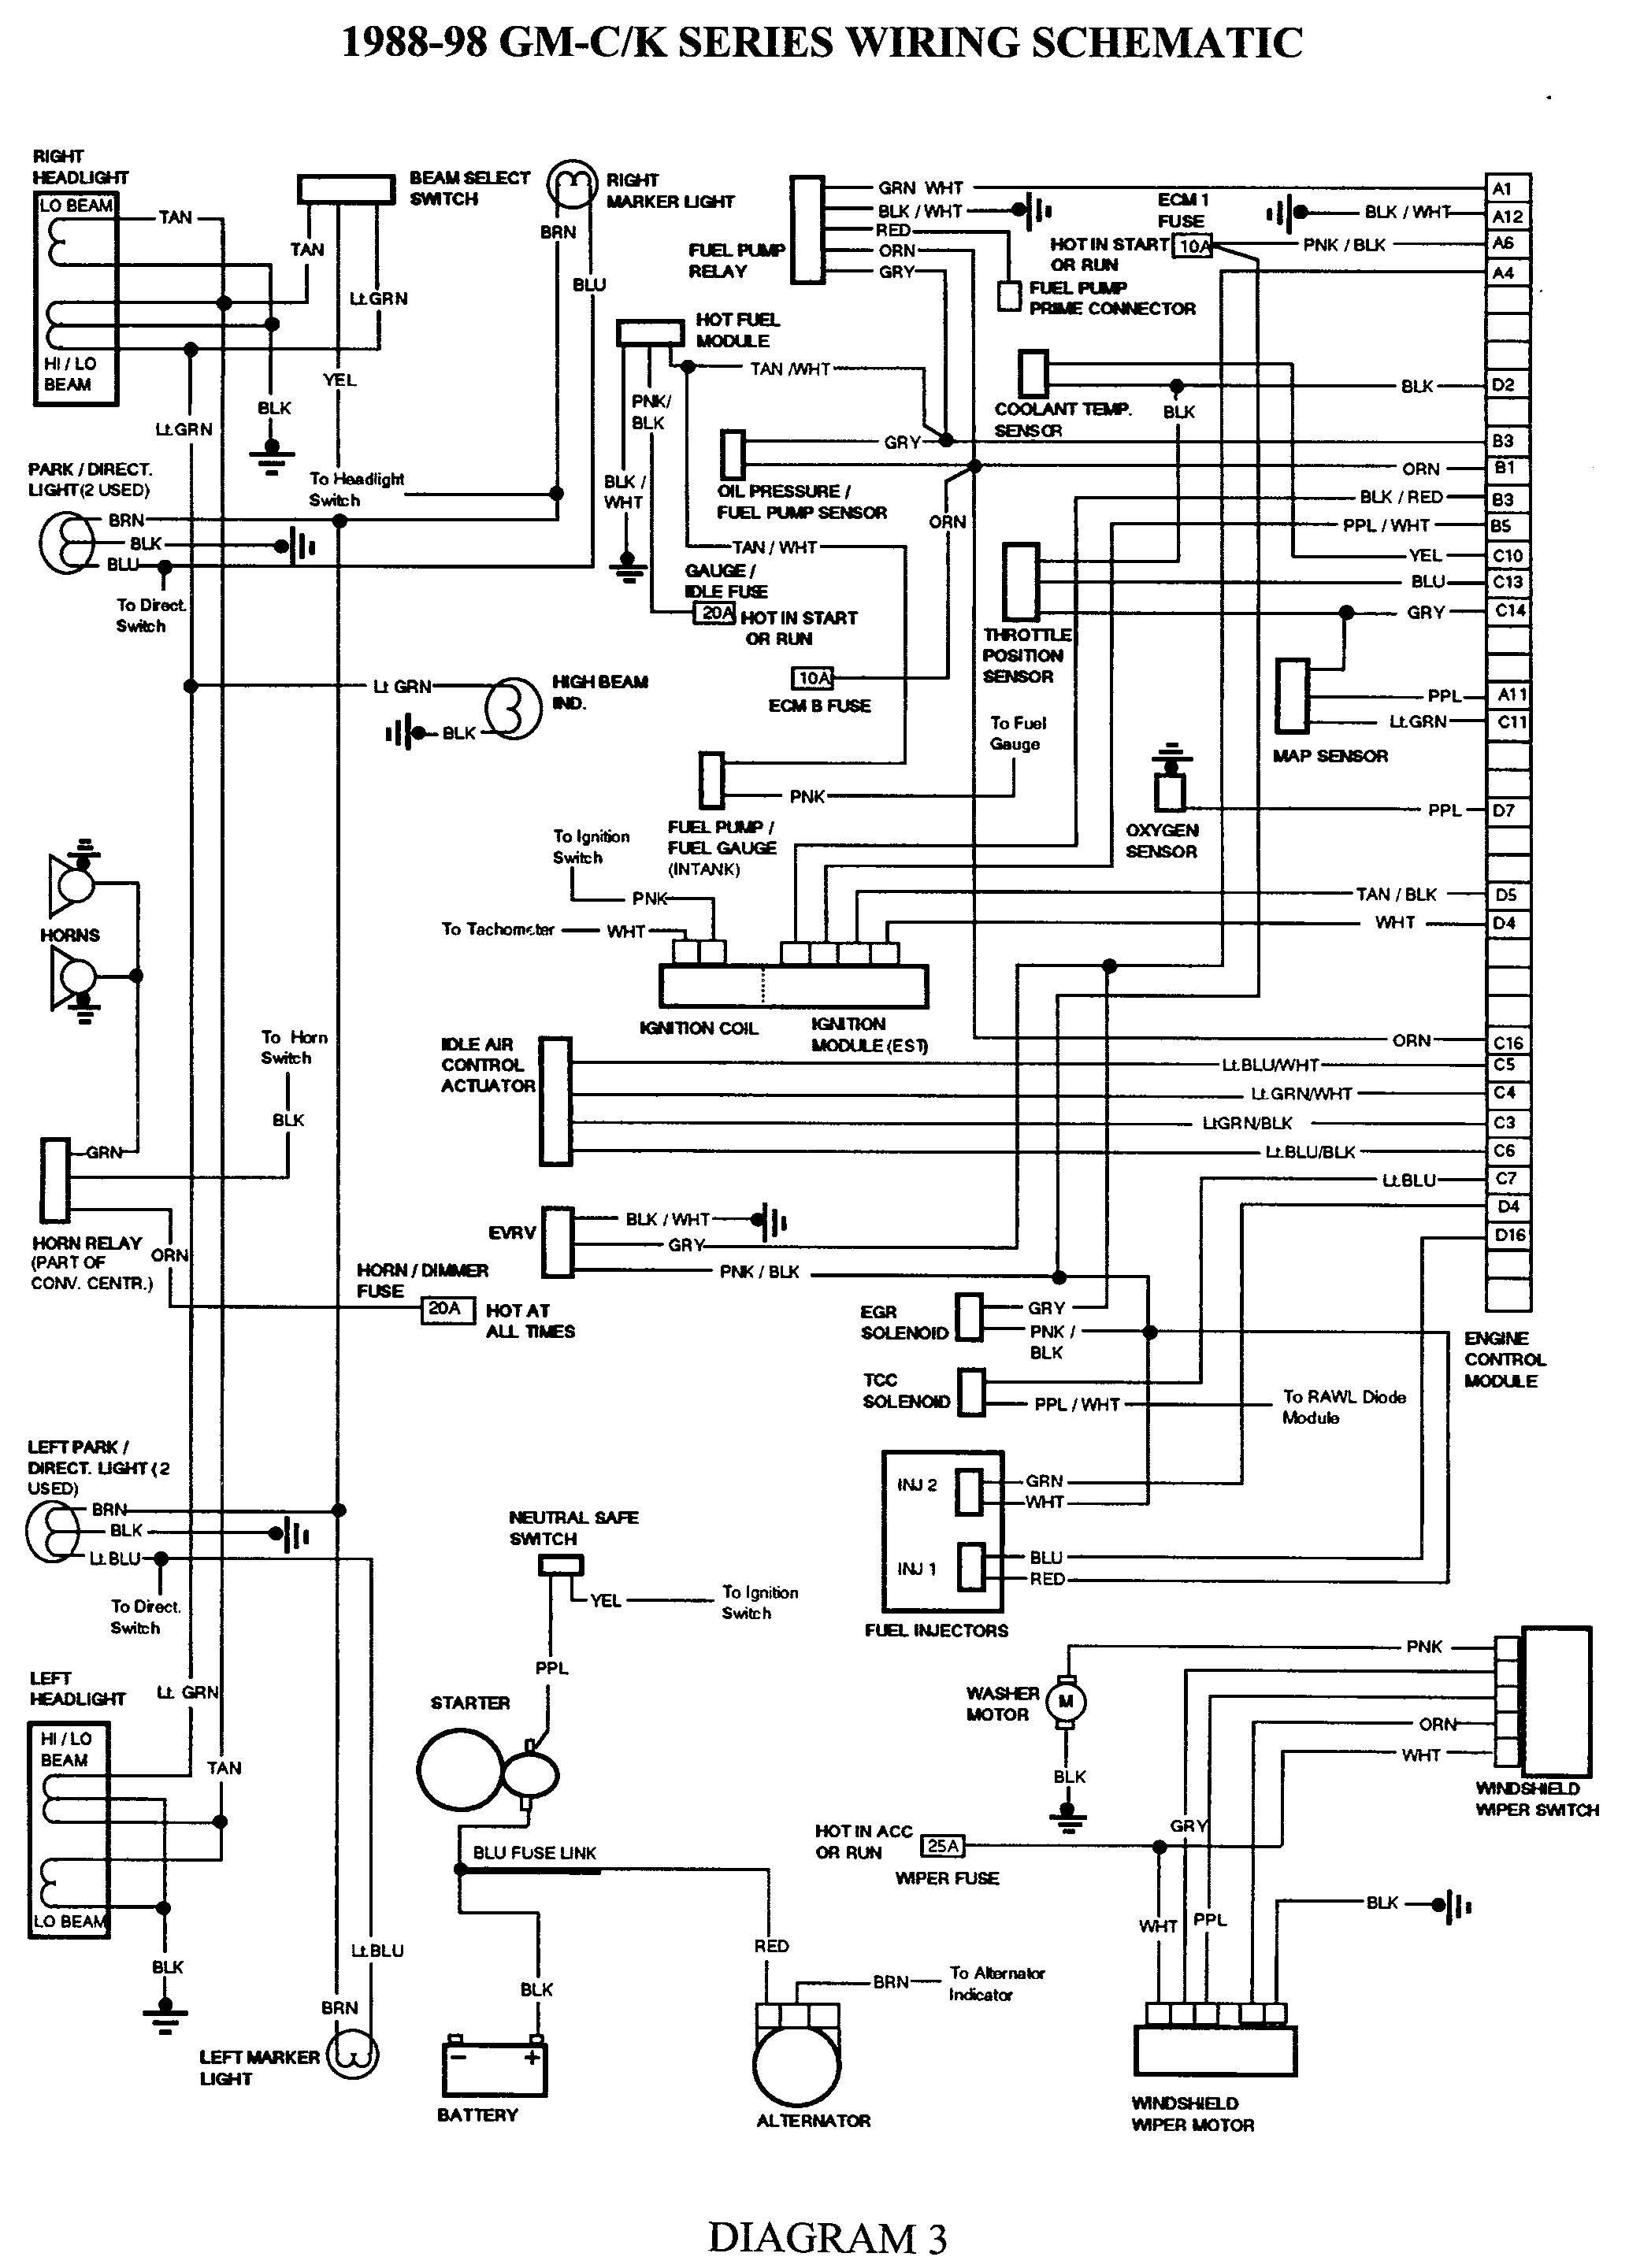 Gmc Truck Wiring Diagrams On Gm Wiring Harness Diagram 88 98 | Kc - 1988 Chevy Truck Wiring Diagram